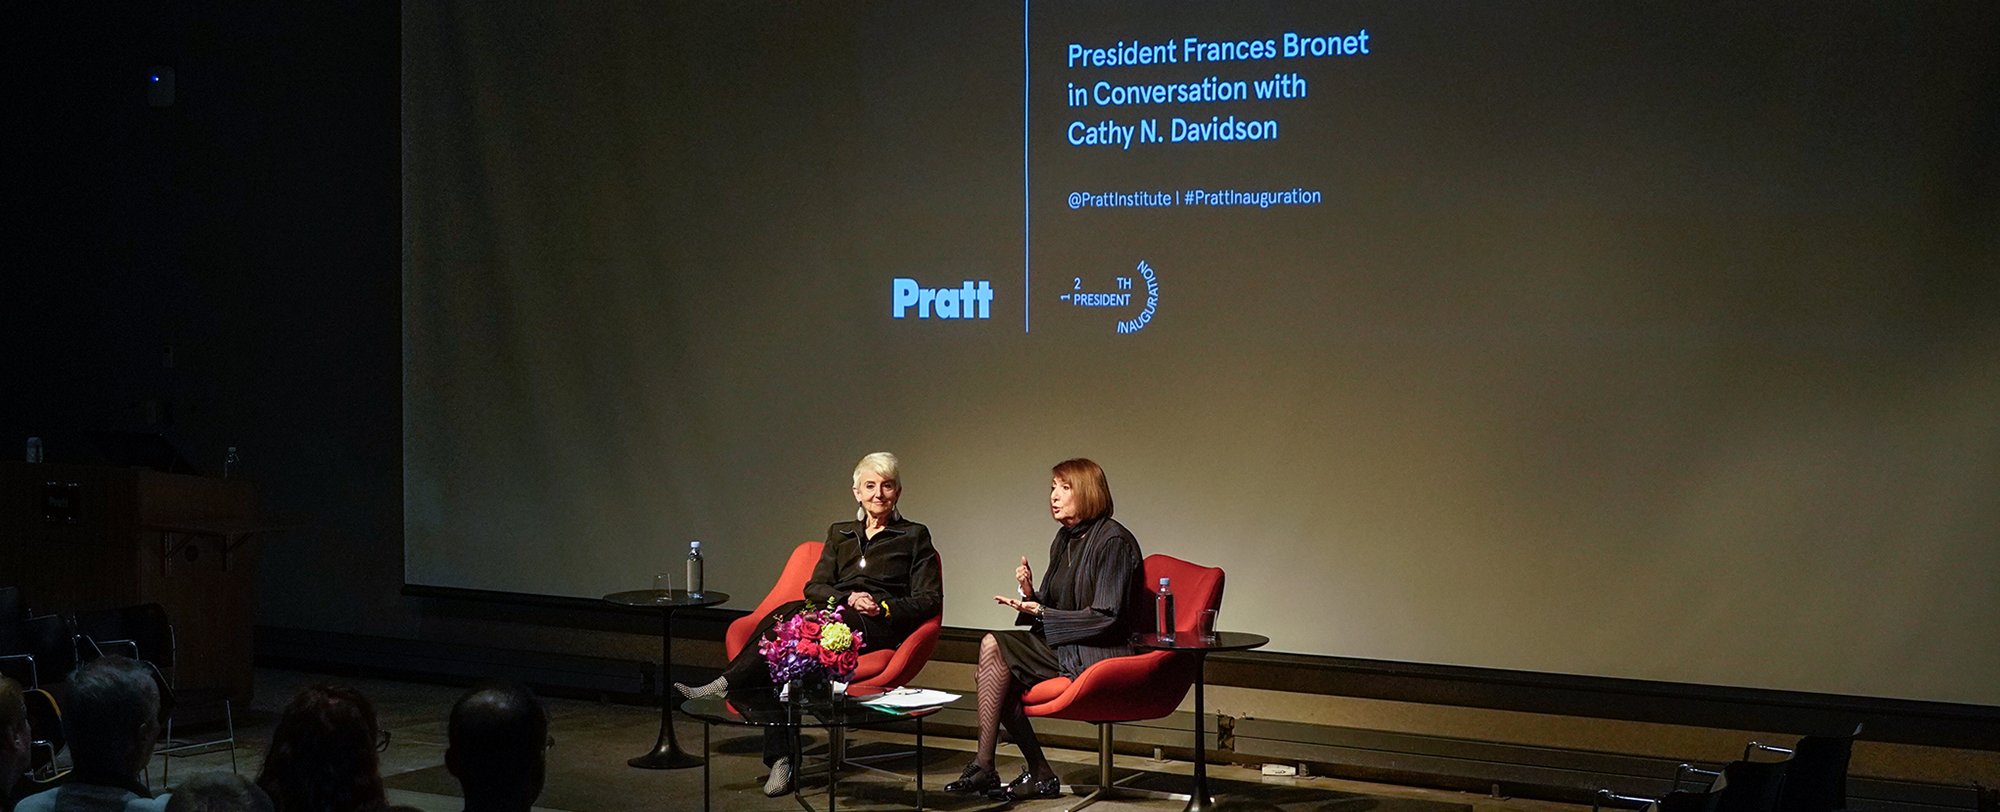 President Bronet and Cathy N. Davidson